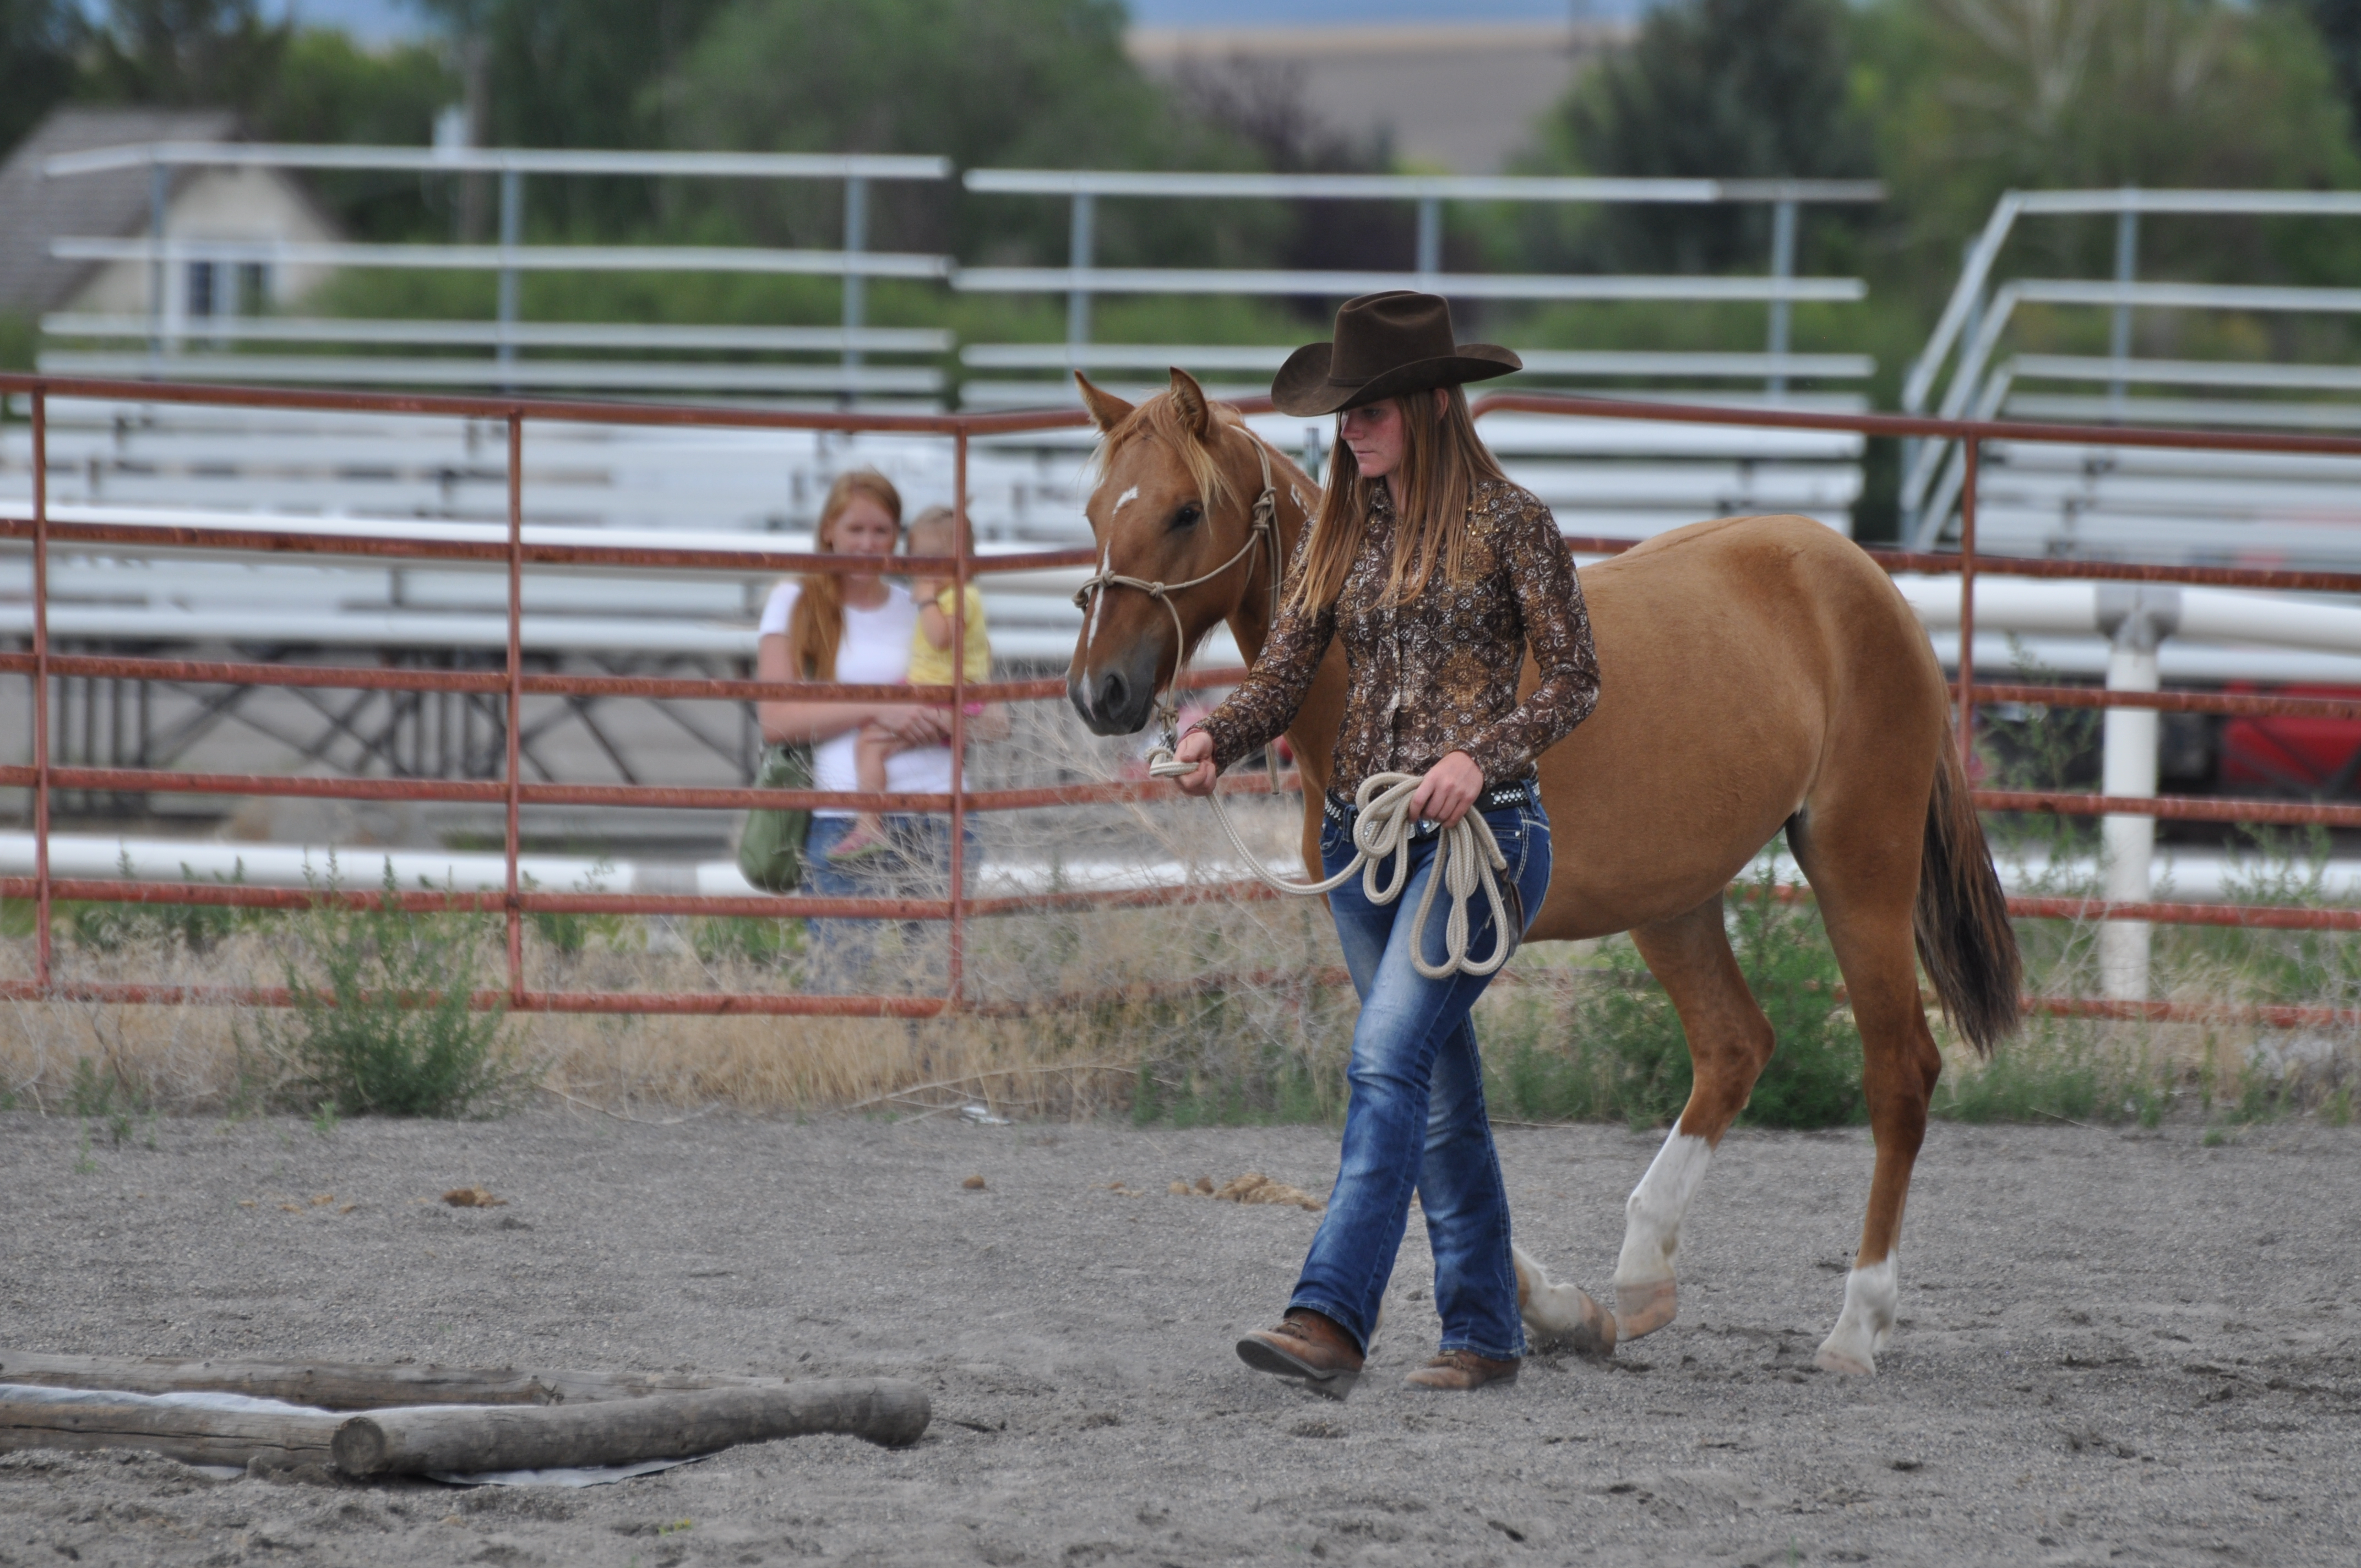 An Idaho 4-H member demonstrates the progress she's made with the mustang she gentled  as part of the partnership with BLM.